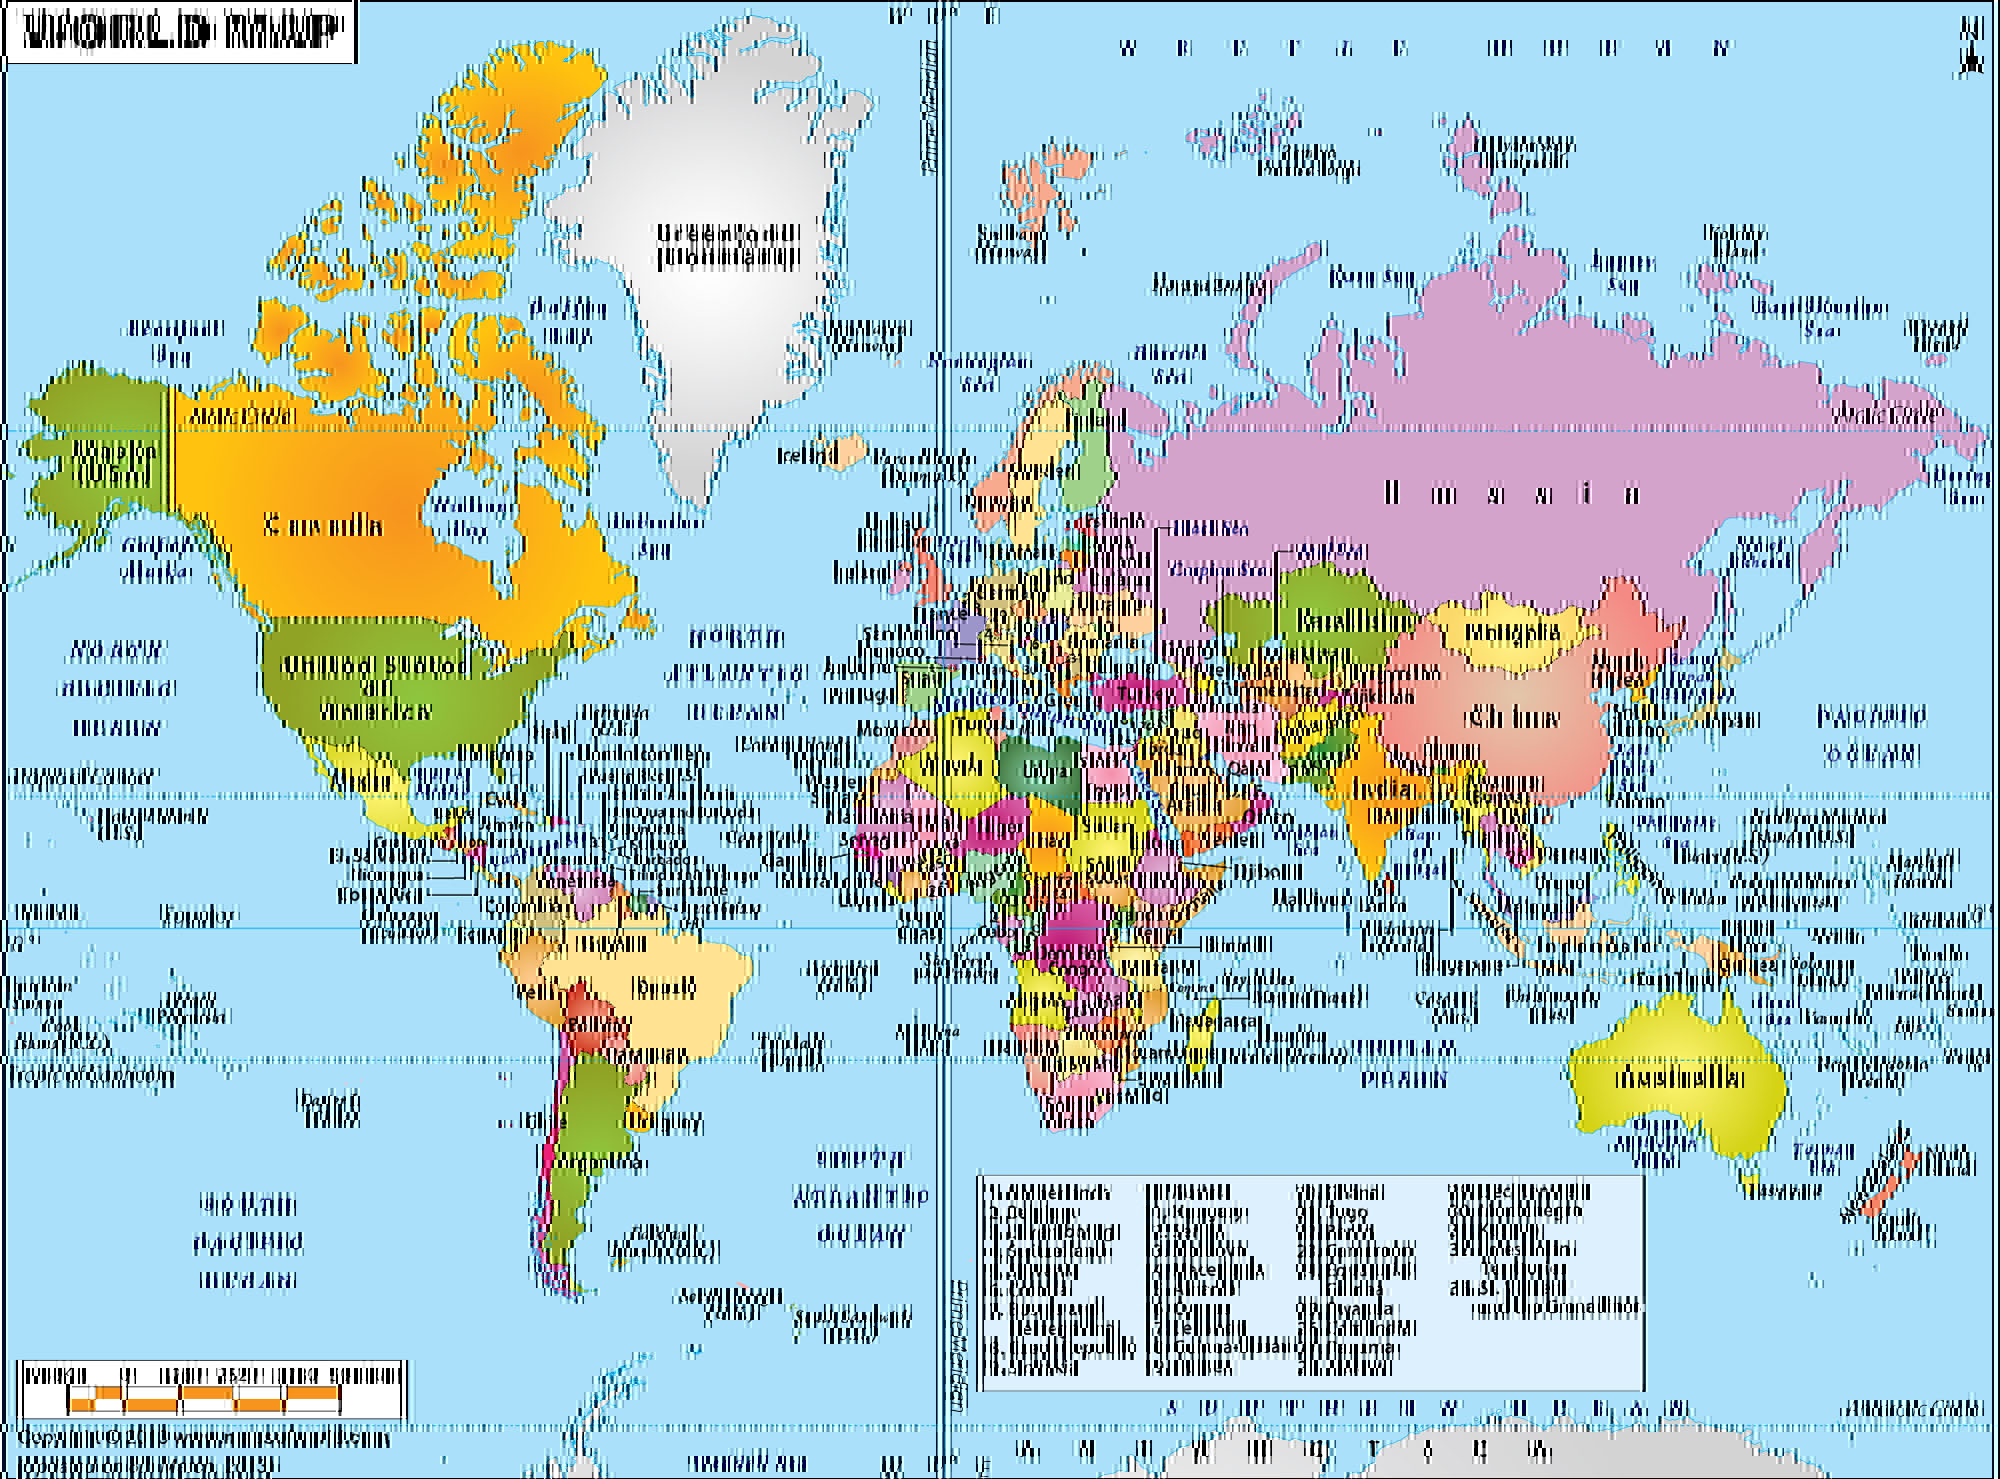 World Map, jpeg header dct single bit flip corruption